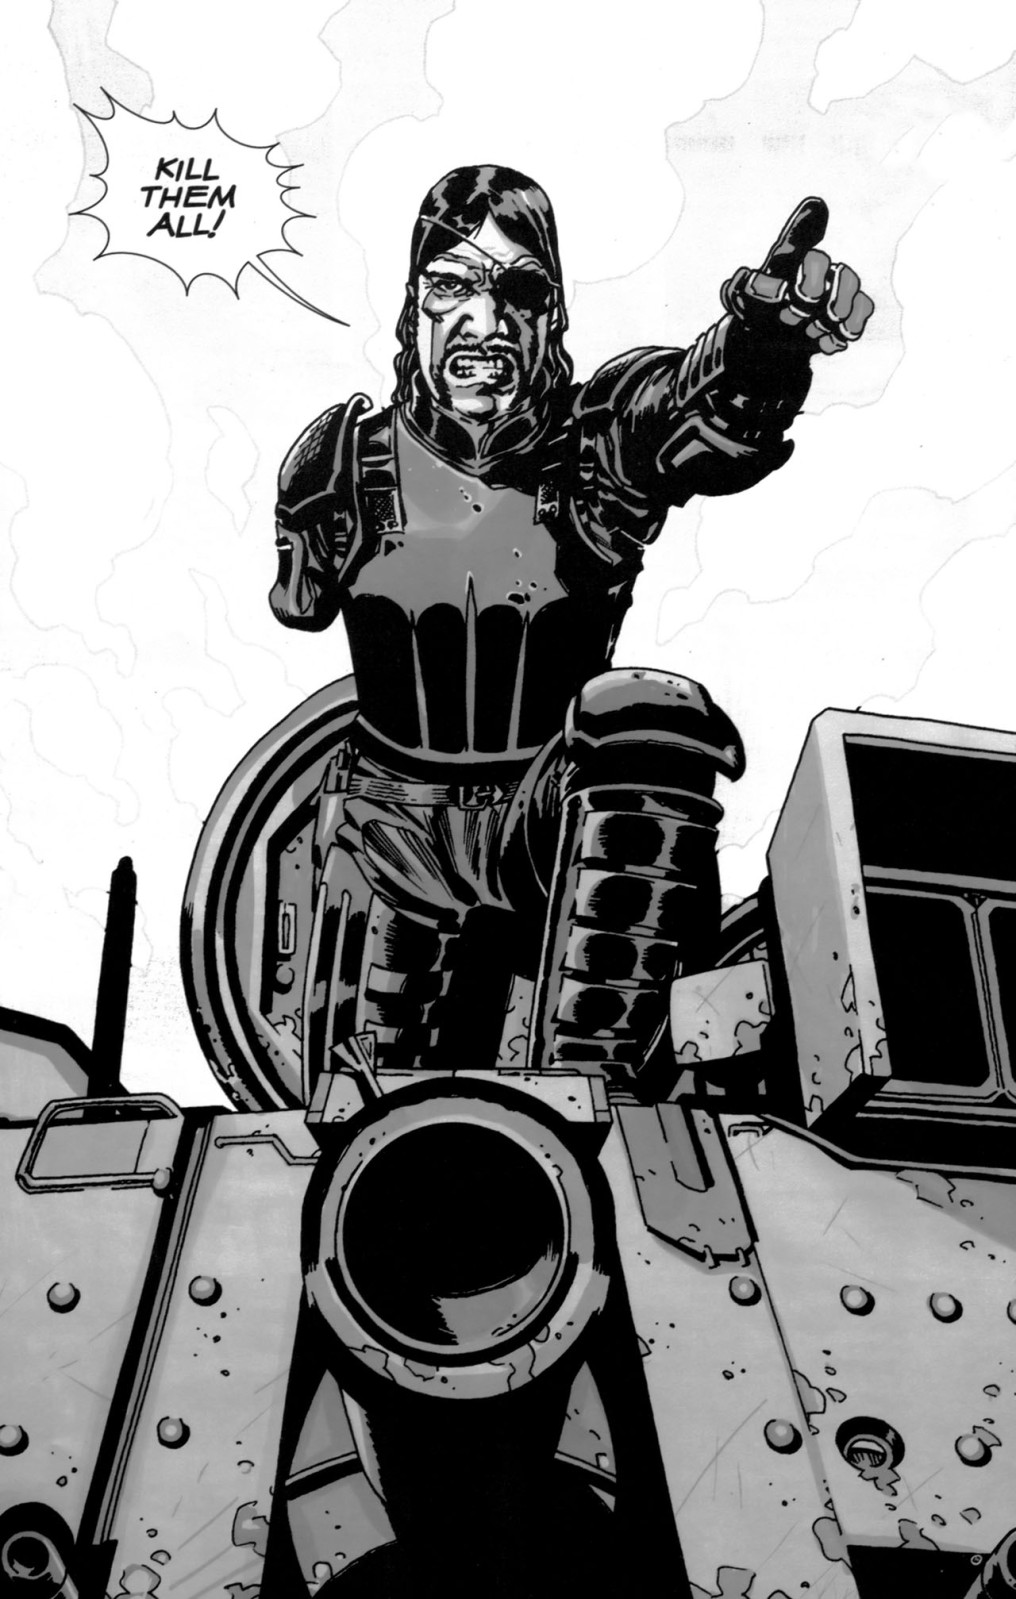 The Governor, aka Philip Blake, aka Brian Blake, from this obscure little black & white zombie comic book you probably haven't heard of called THE WALKING DEAD written by some dude named Robert Kirkman with art by Charlie Adlard.